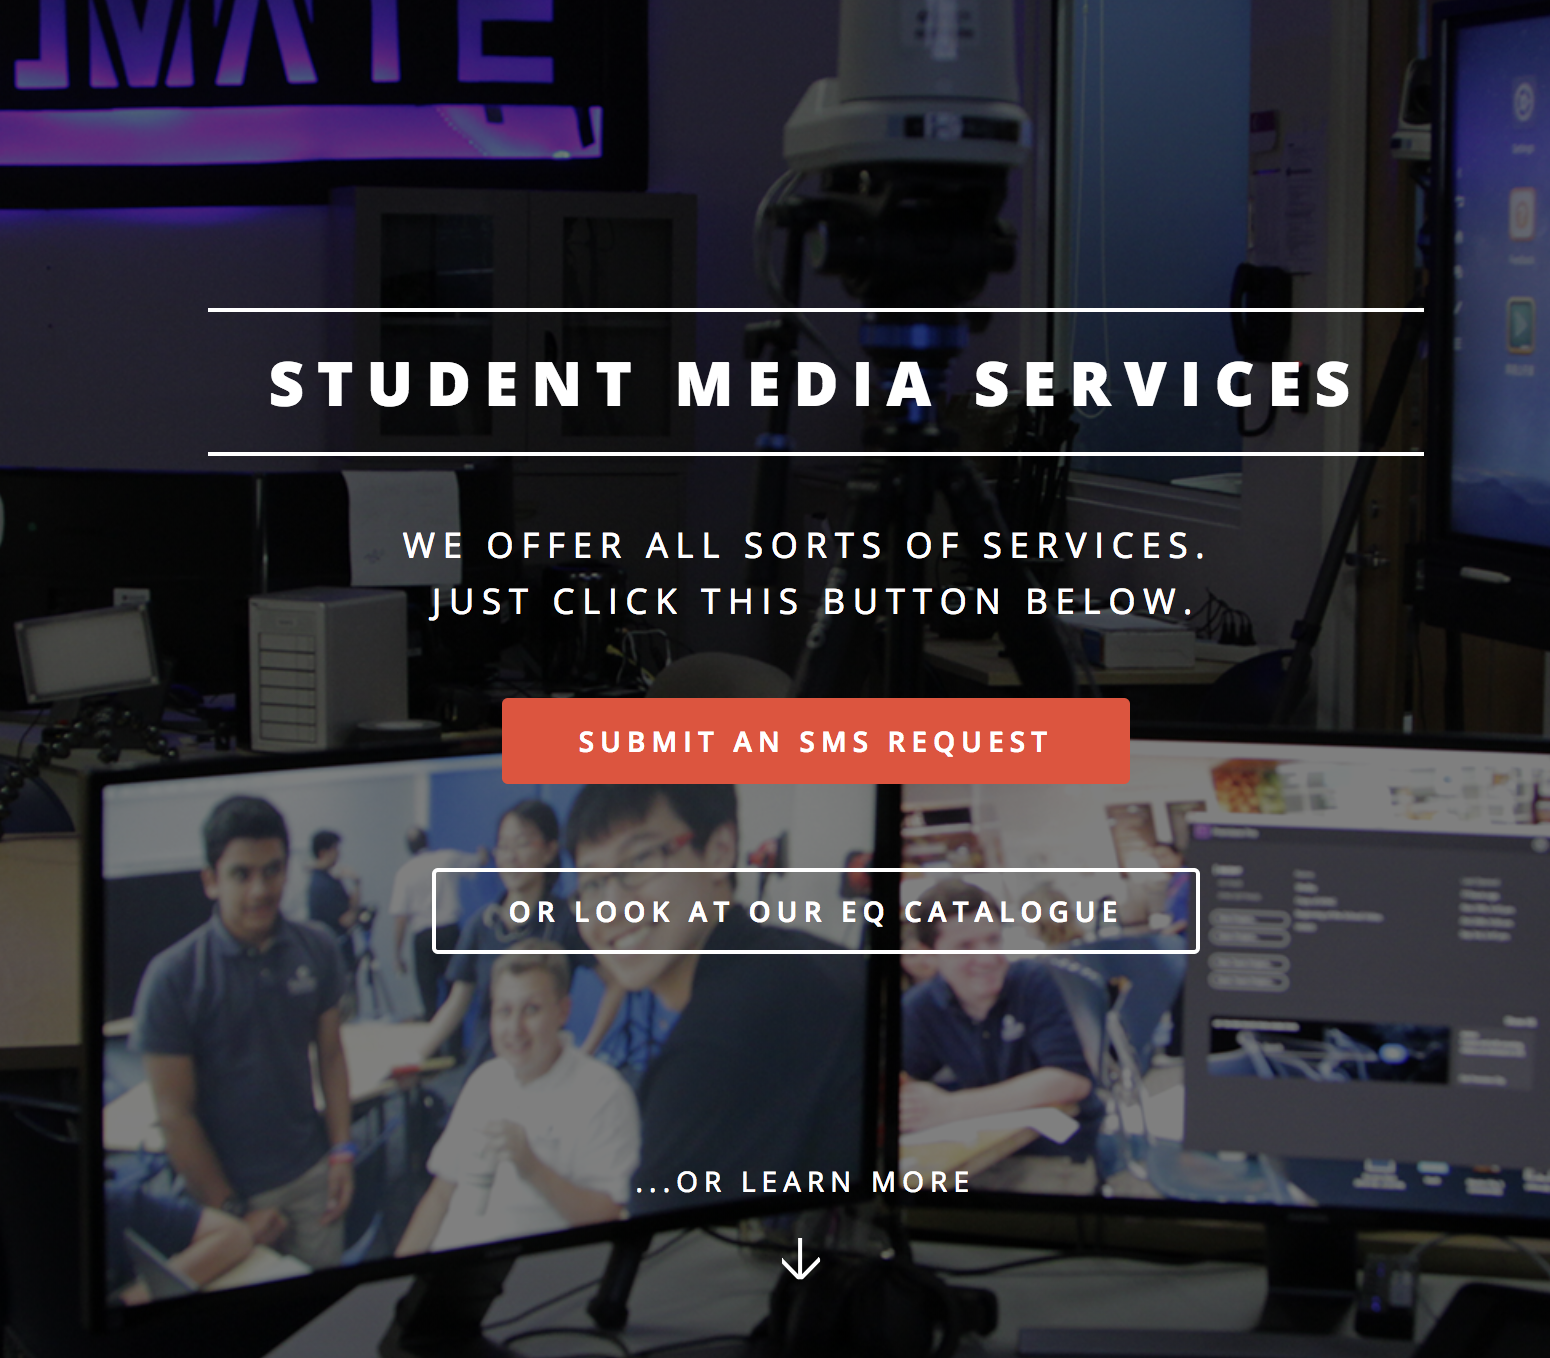 From a system dominated by paper, e-mail and word-of-mouth, the new SMS database provides a dependable, trackable way for Concordians to request media projects.